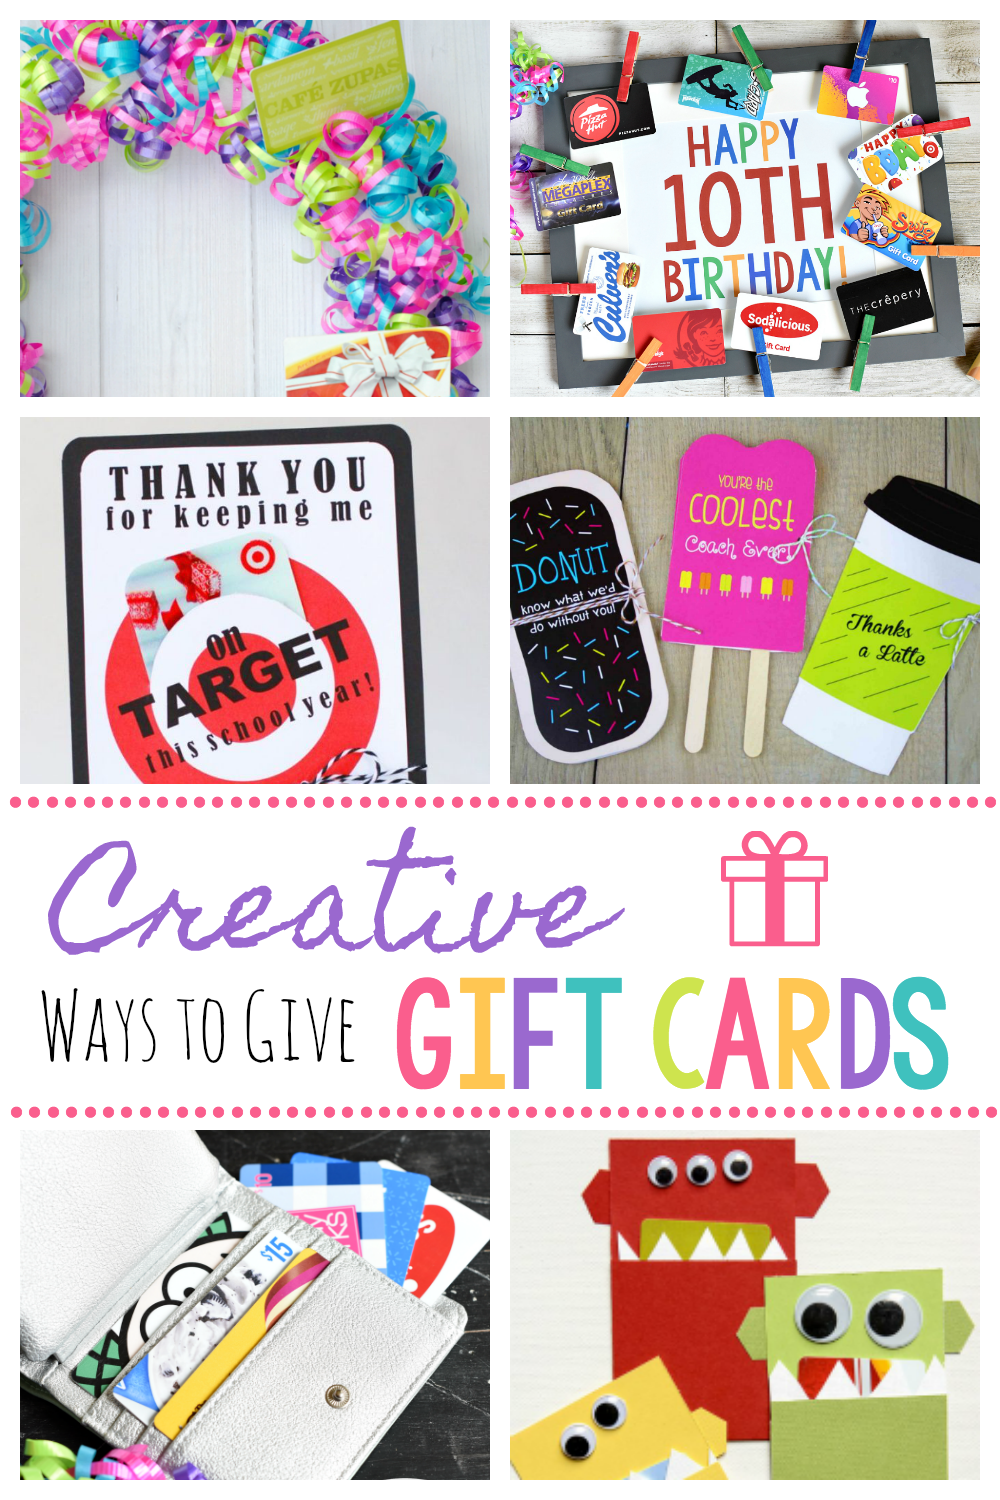 Creative Ways to Give Gift Cards-Fun DIY Gift Card Giving Ideas #giftcards #giftcardideas #gifts